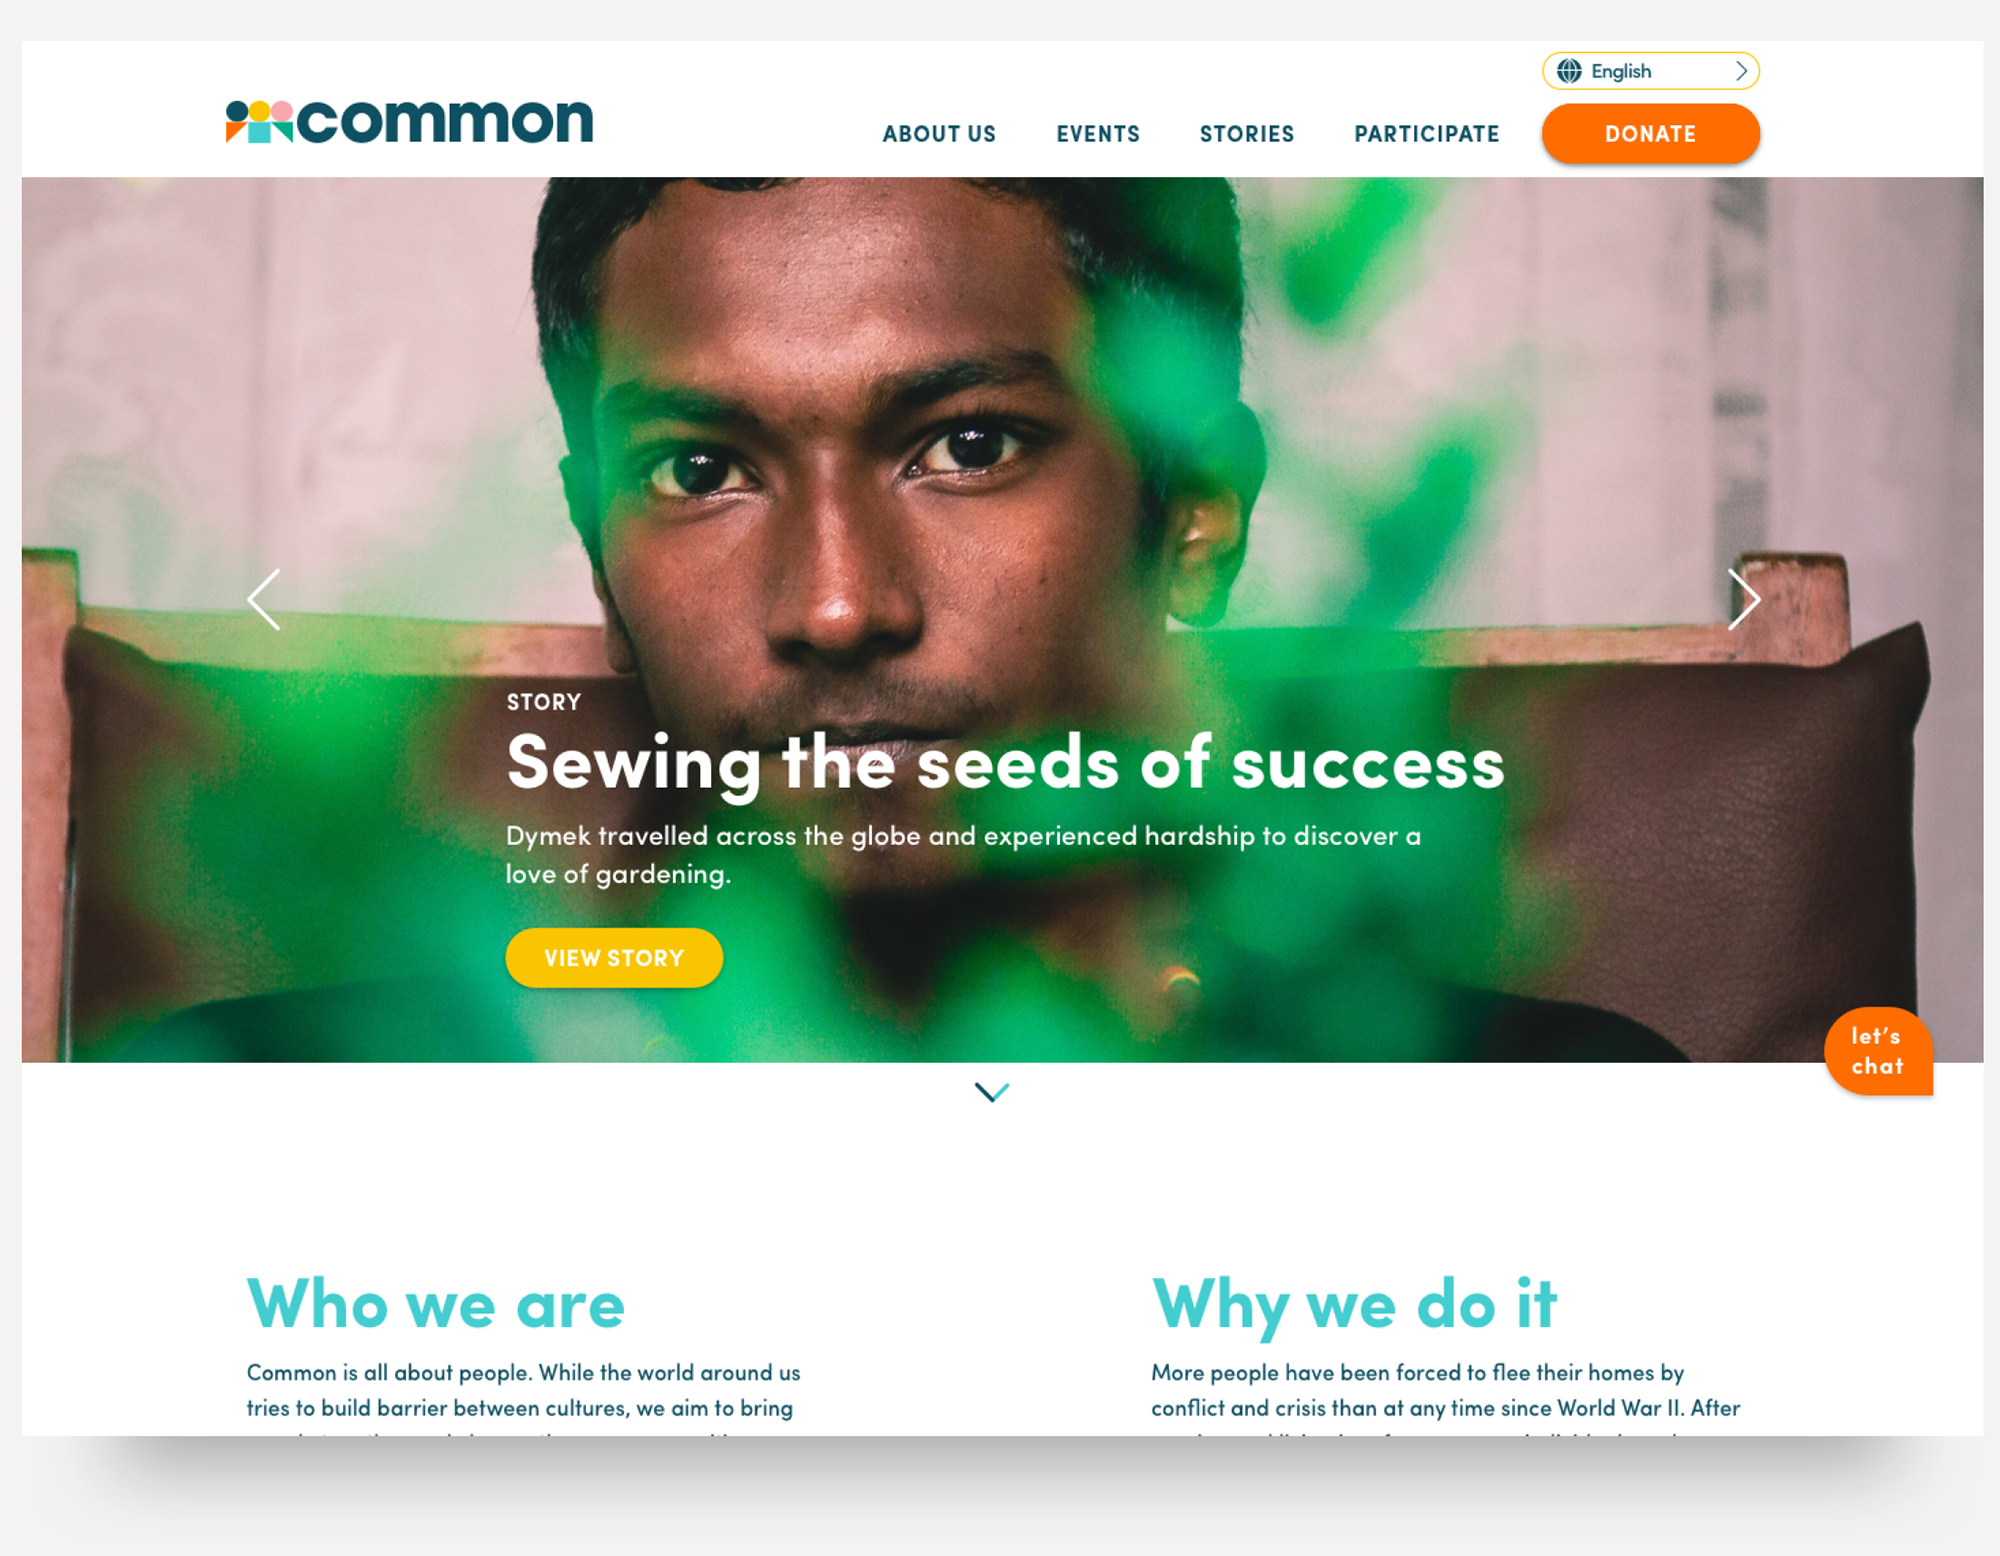 The homepage starts with an individual story to humanize the experience.